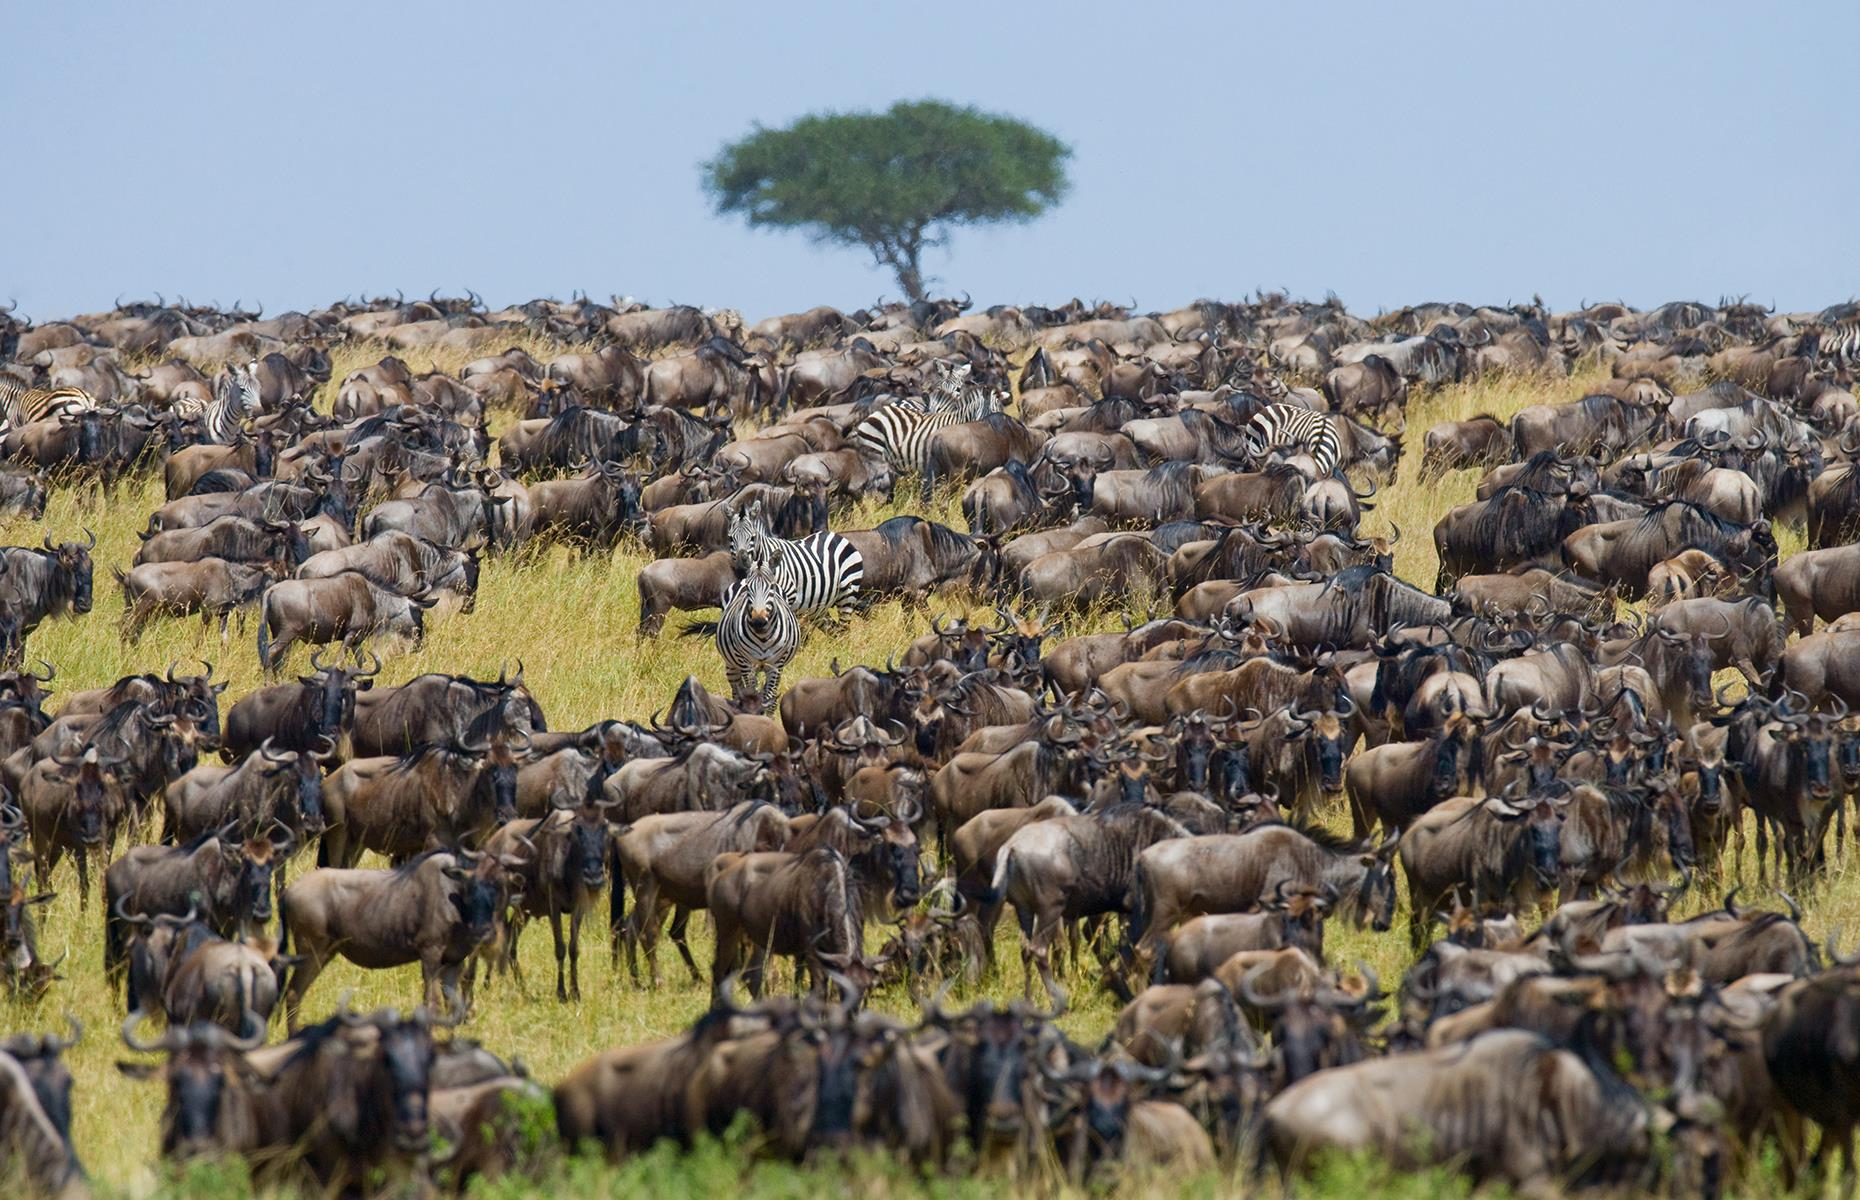 Slide 4 of 41: Following the rainy season, the largest mammal migration on Earth sees 1.5 million wildebeest and zebra make an epic journey over a 11,583 square-mile (30,000sq km) area, traveling northwest from the plains of the Serengeti in search of greener pastures every year. This amazing sight can be seen at its best in May or June in either Tanzania's Serengeti National Park or Kenya's Maasai Mara National Reserve.